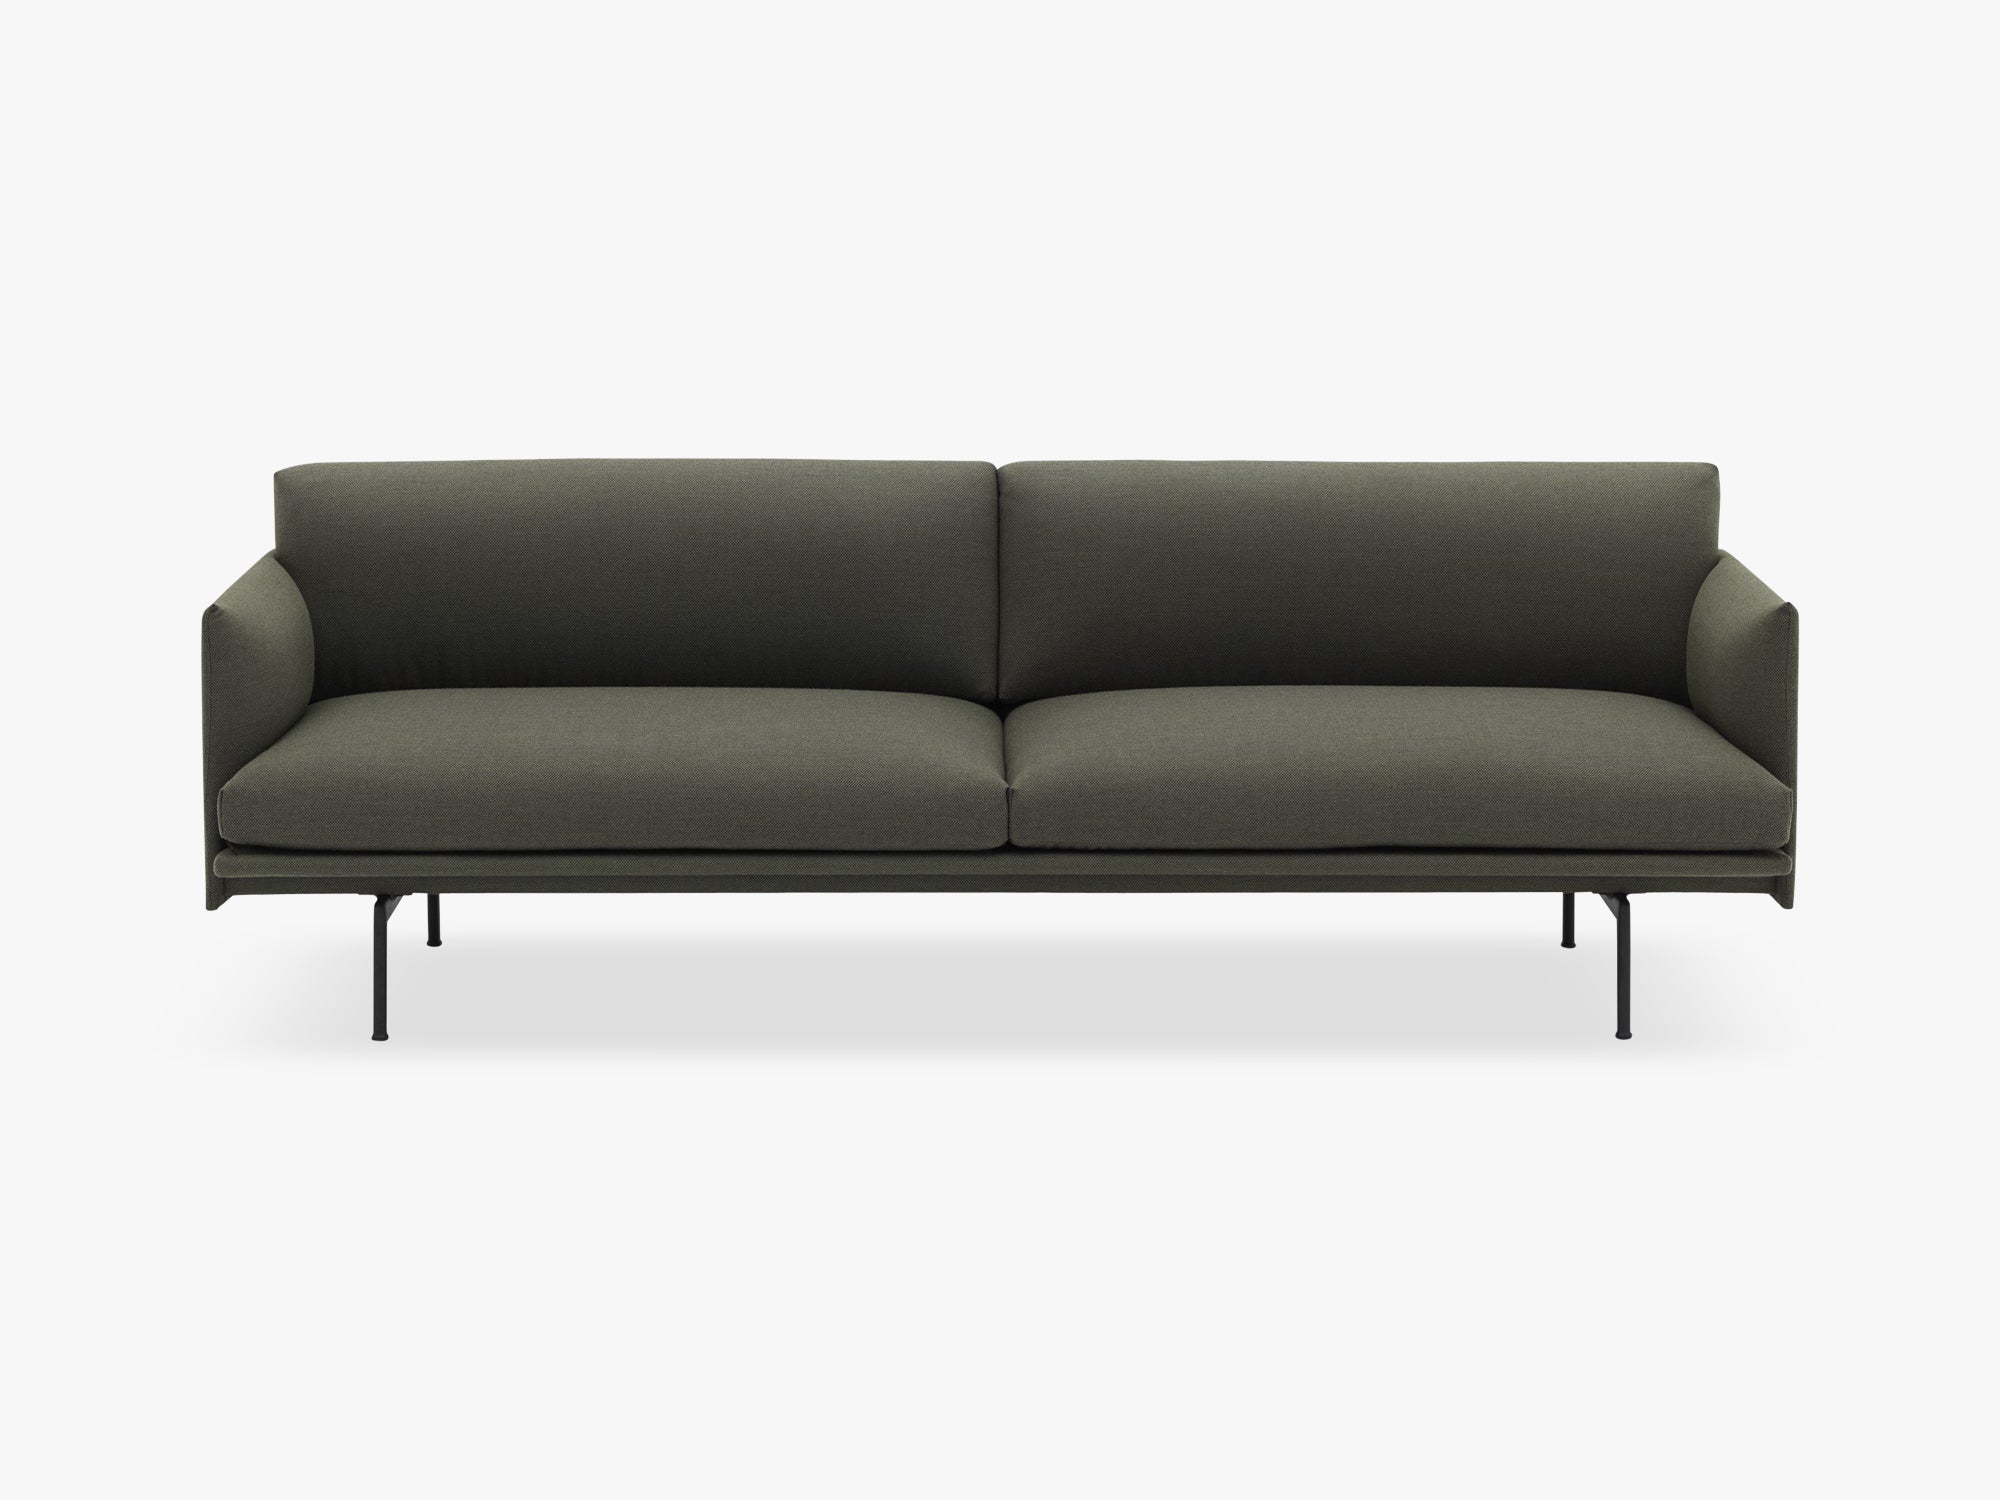 Outline Sofa - 3-Seater, Fiord 961 fra Muuto